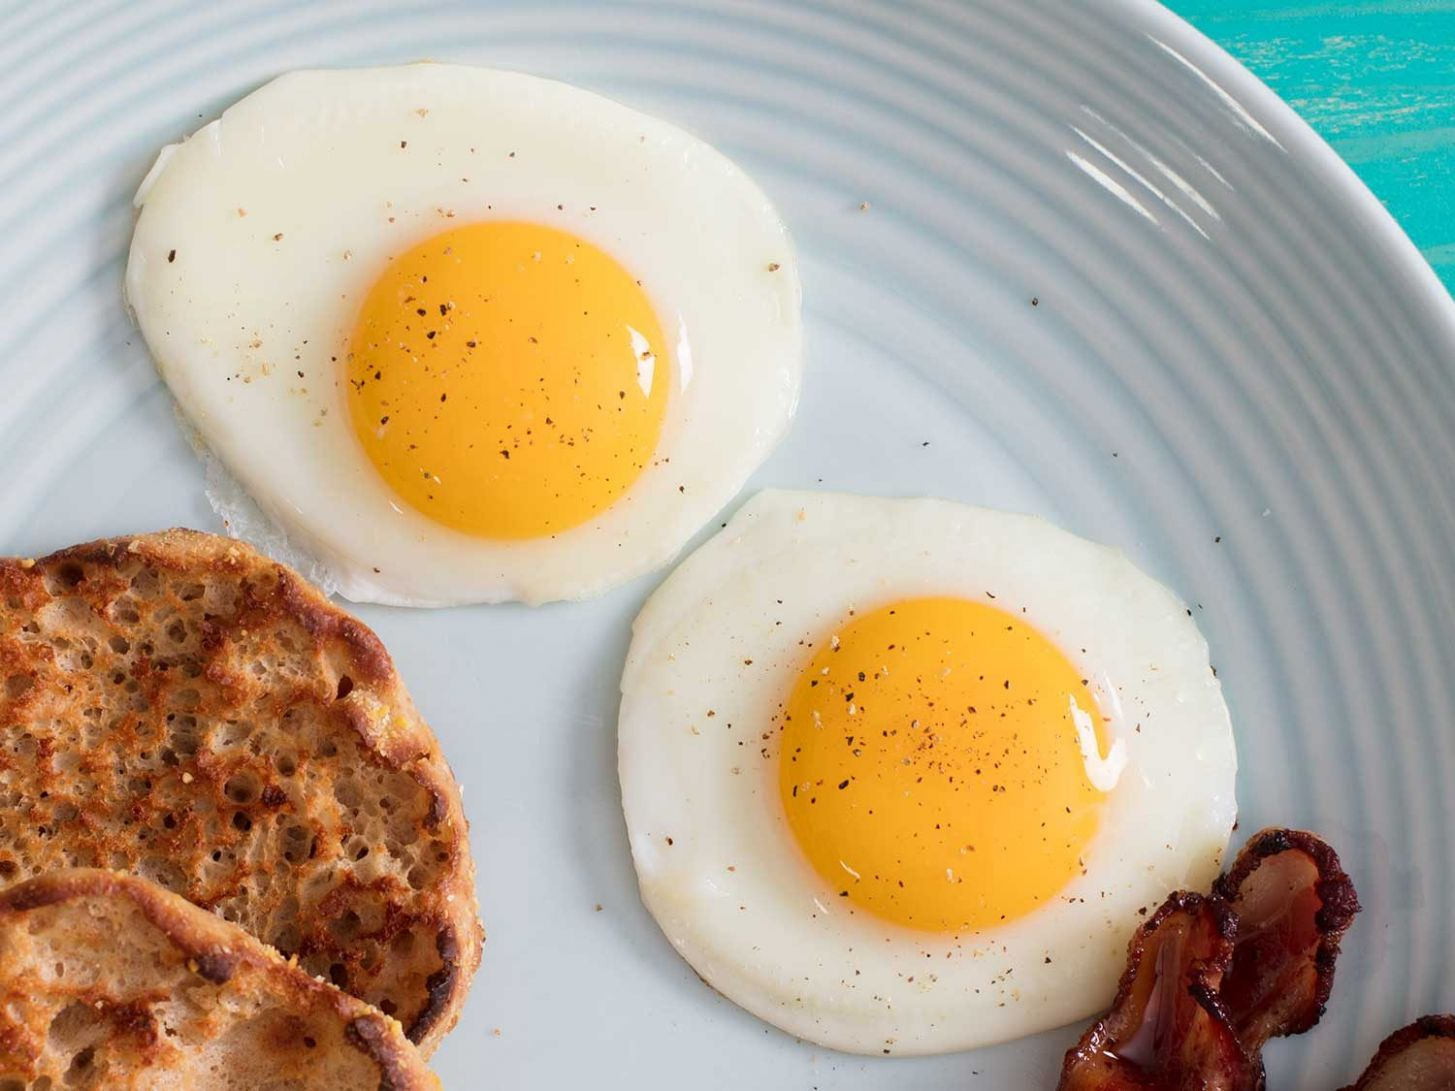 12 Egg Breakfast Recipes to Start Your Day | Serious Eats - Breakfast Recipes You Could Make With Eggs